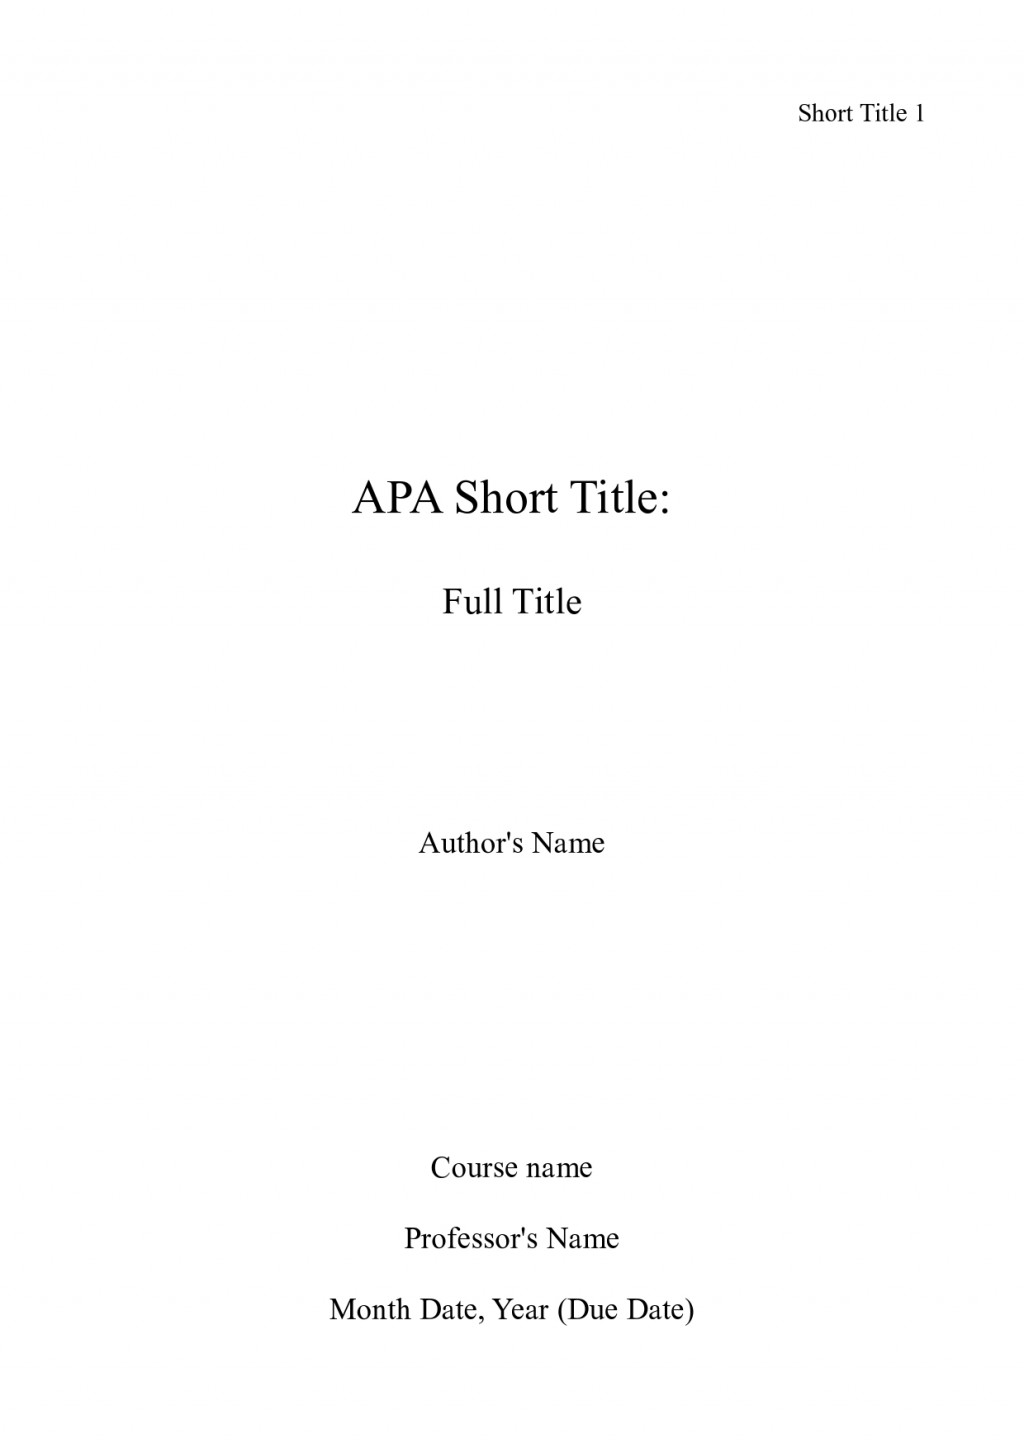 002 Essay Cover Page Template Apa Title Sample Fantastic Research Paper Example Mla Download Large